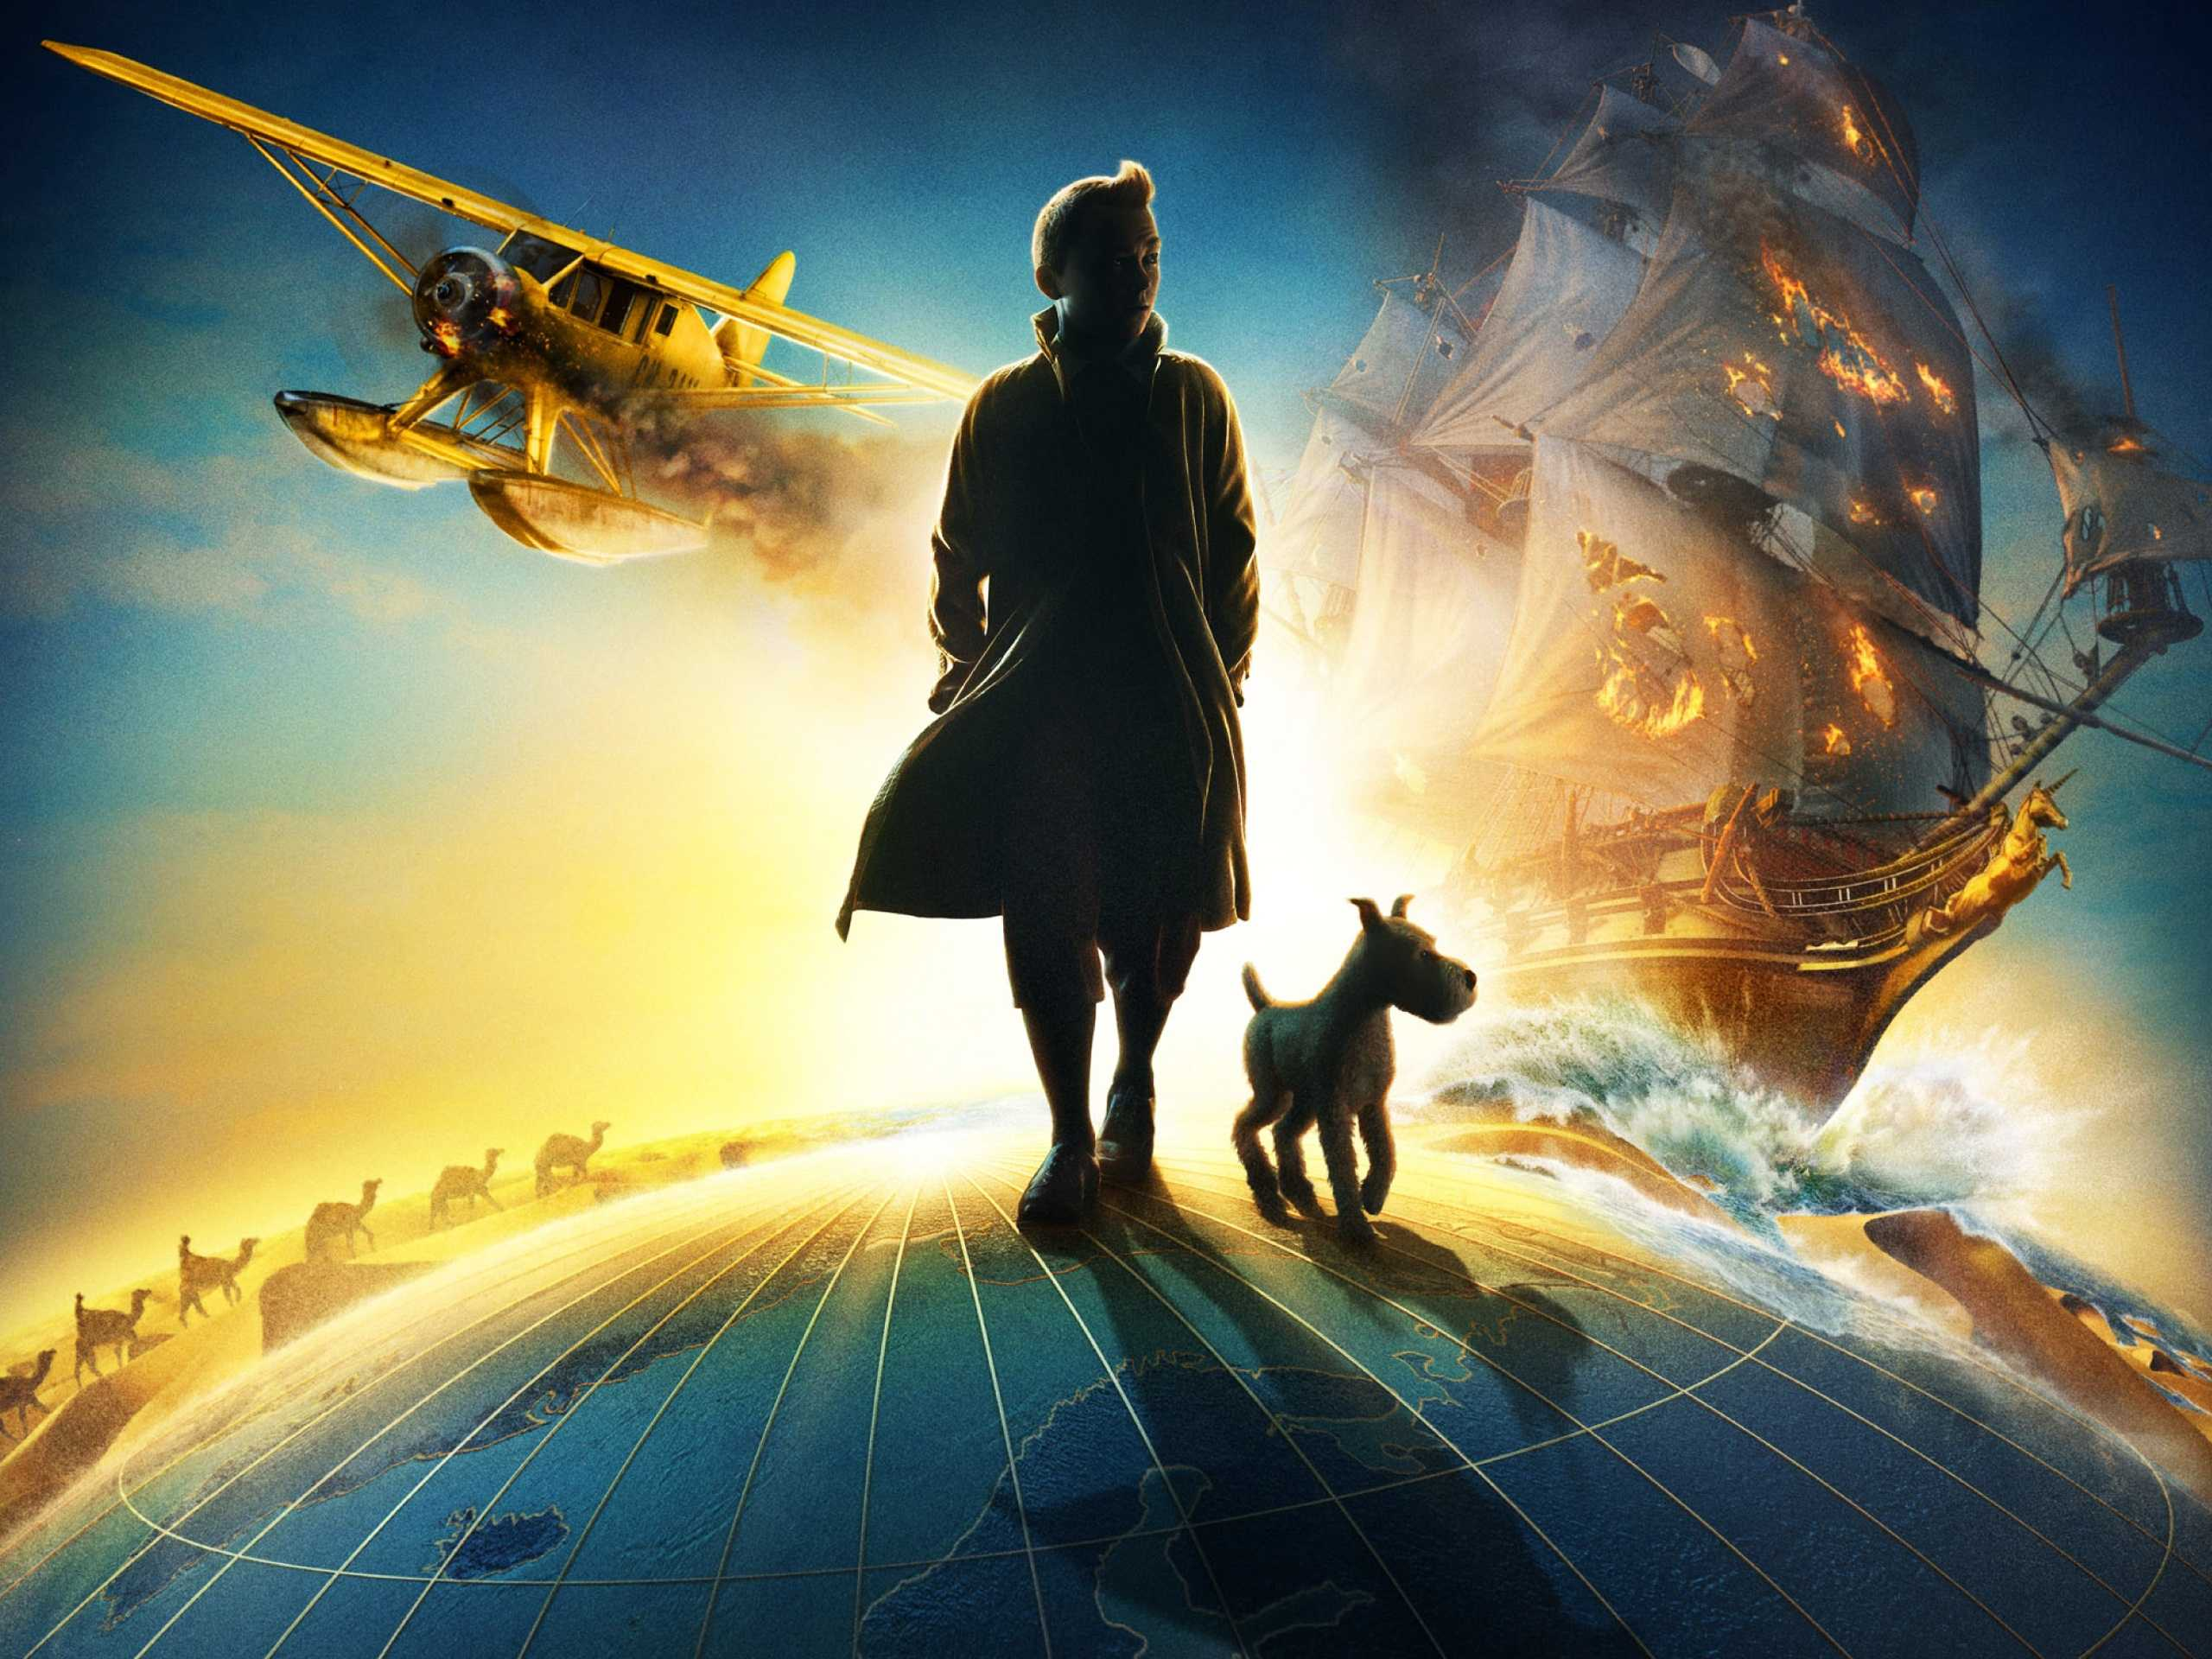 2011 The Adventures of Tintin